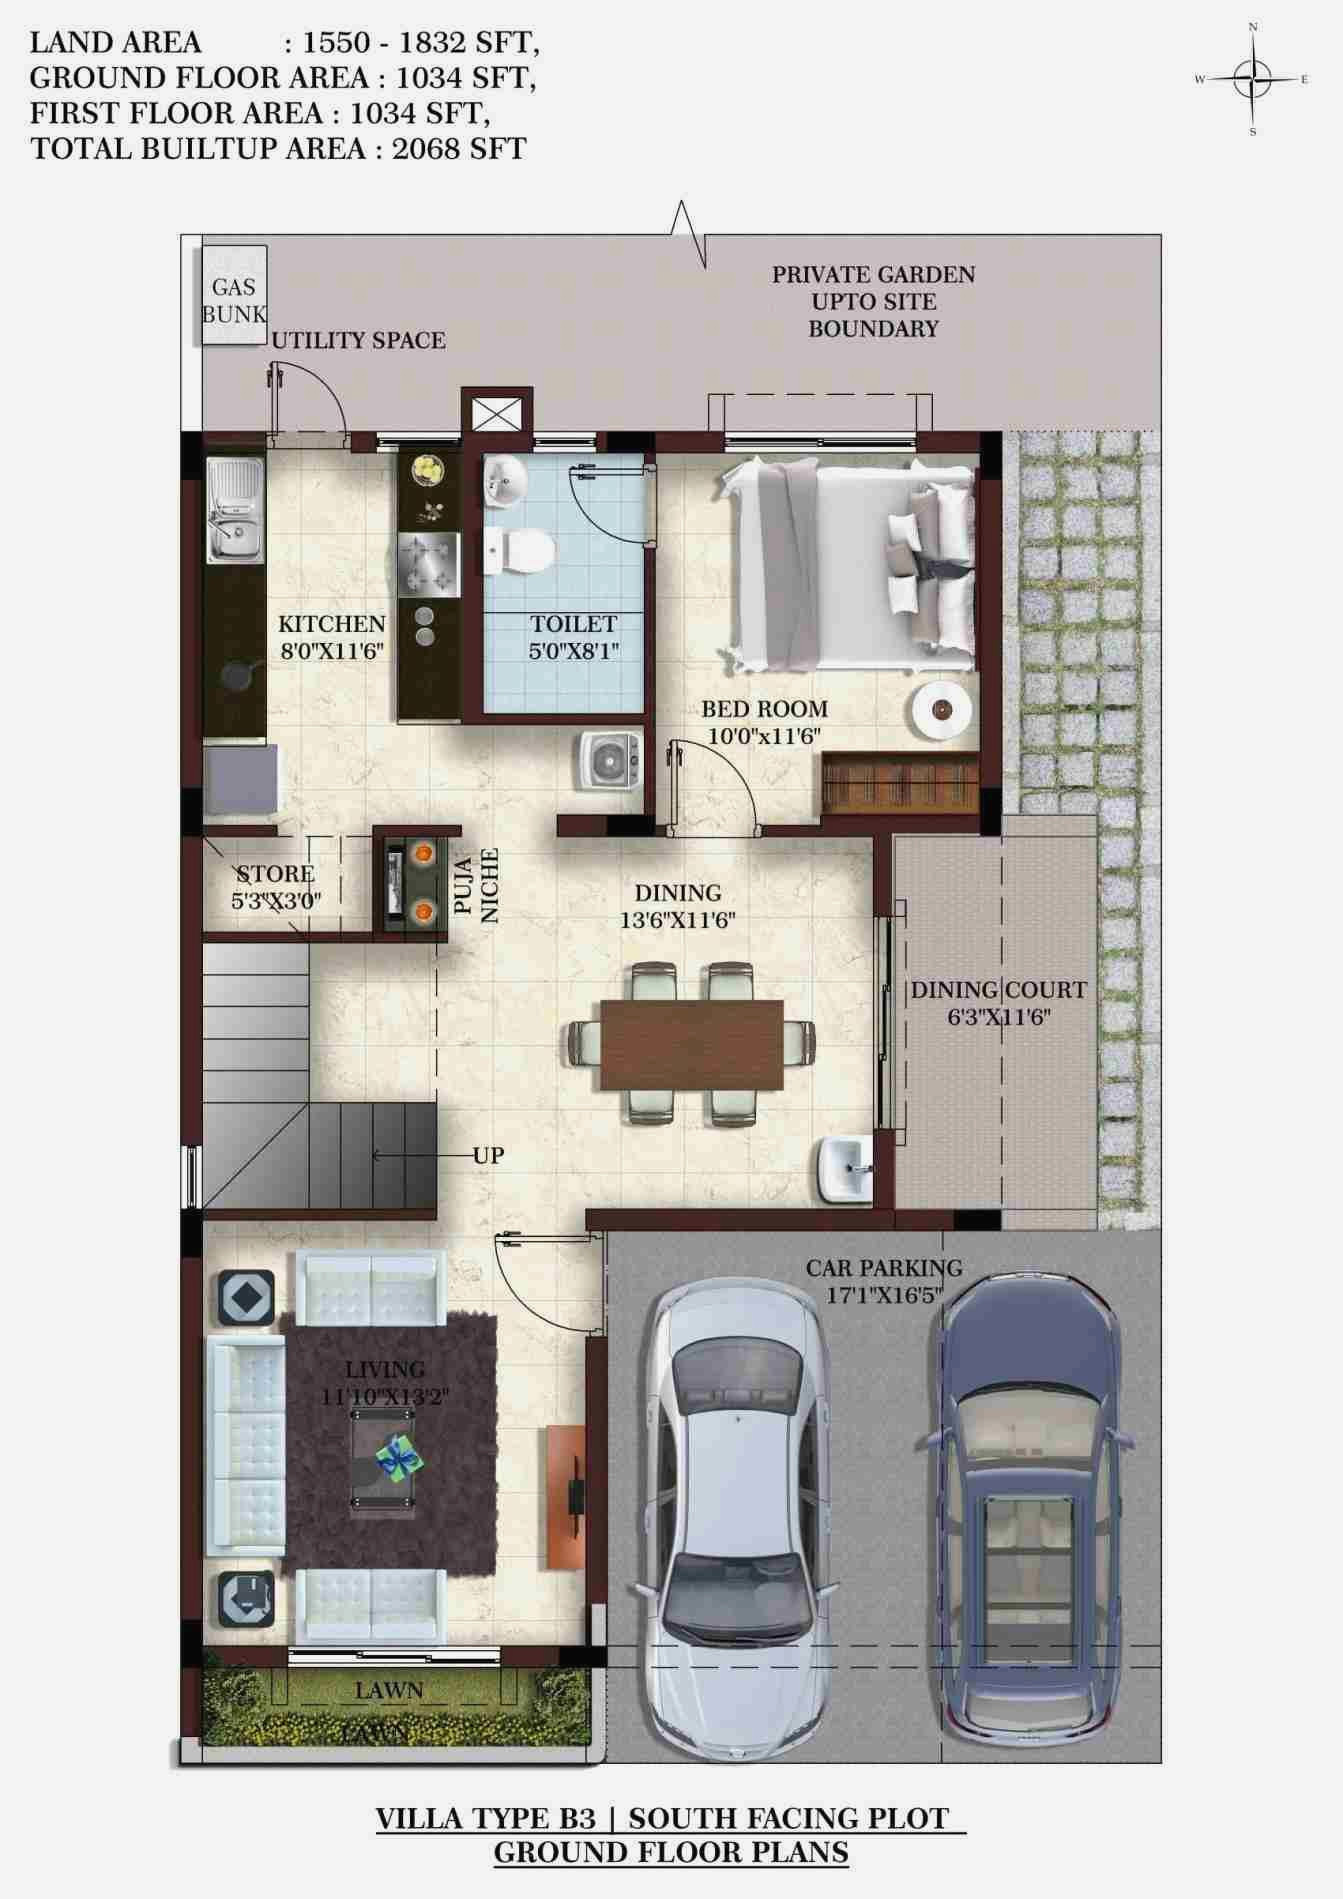 600 sq ft duplex house plans new 600 sq ft house plans 2 bedroom indian araniko in 2019